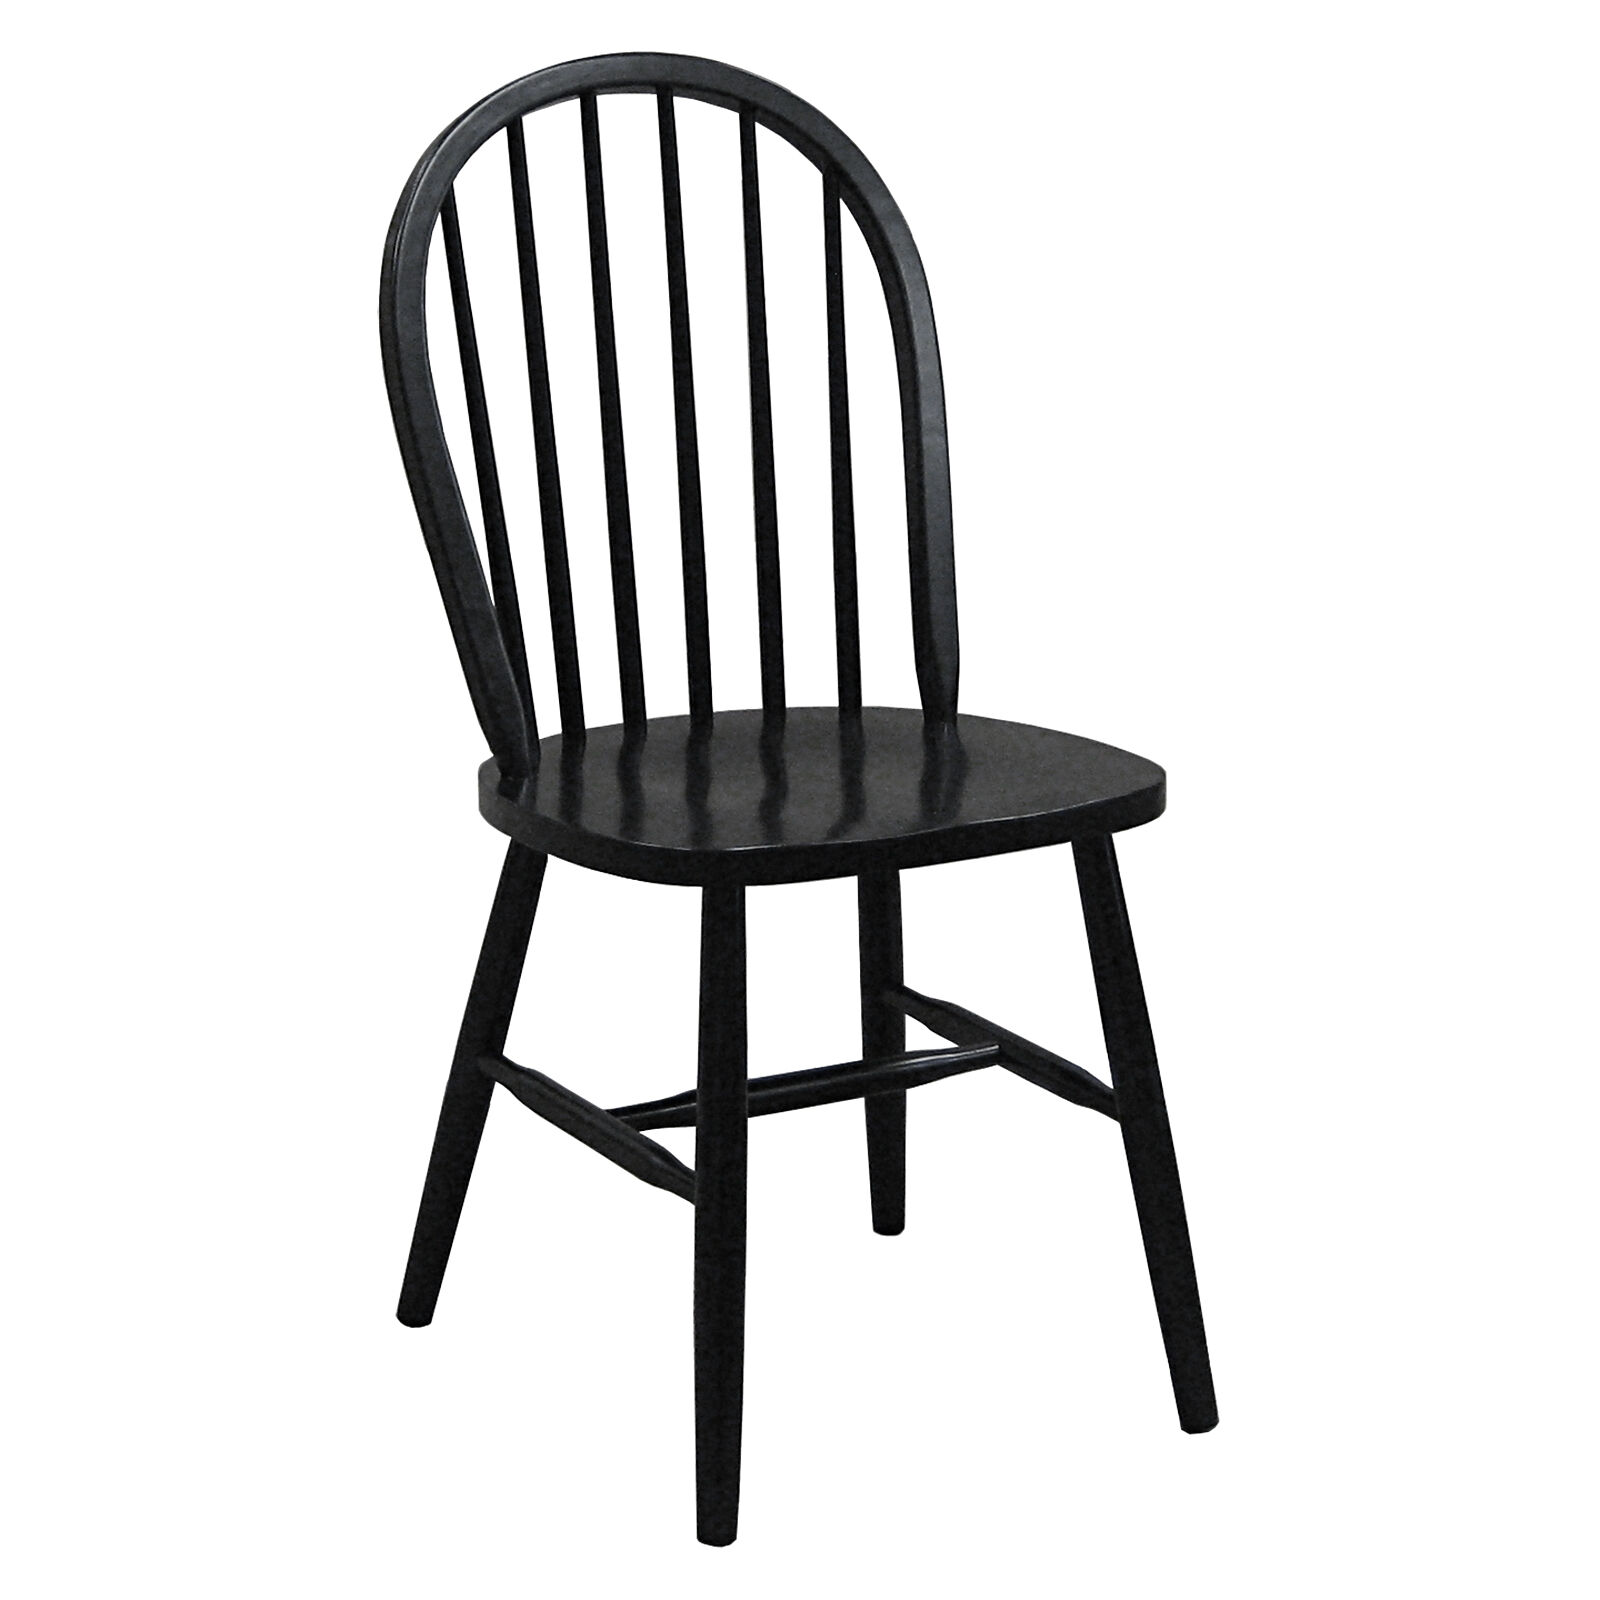 Black Windsor Chair Black Windsor Dining Chair At Home